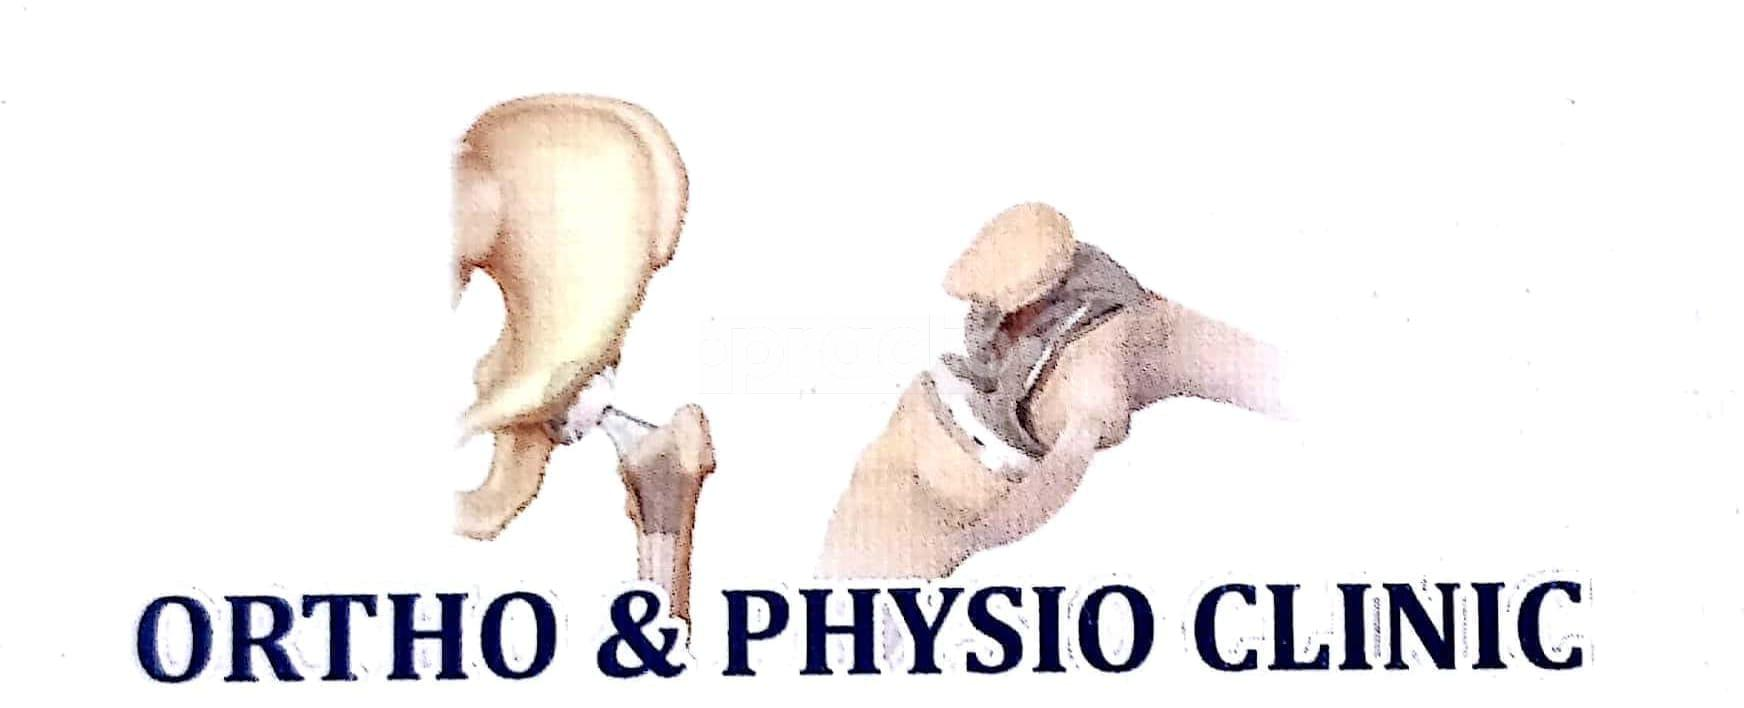 Ortho & Physio Clinic